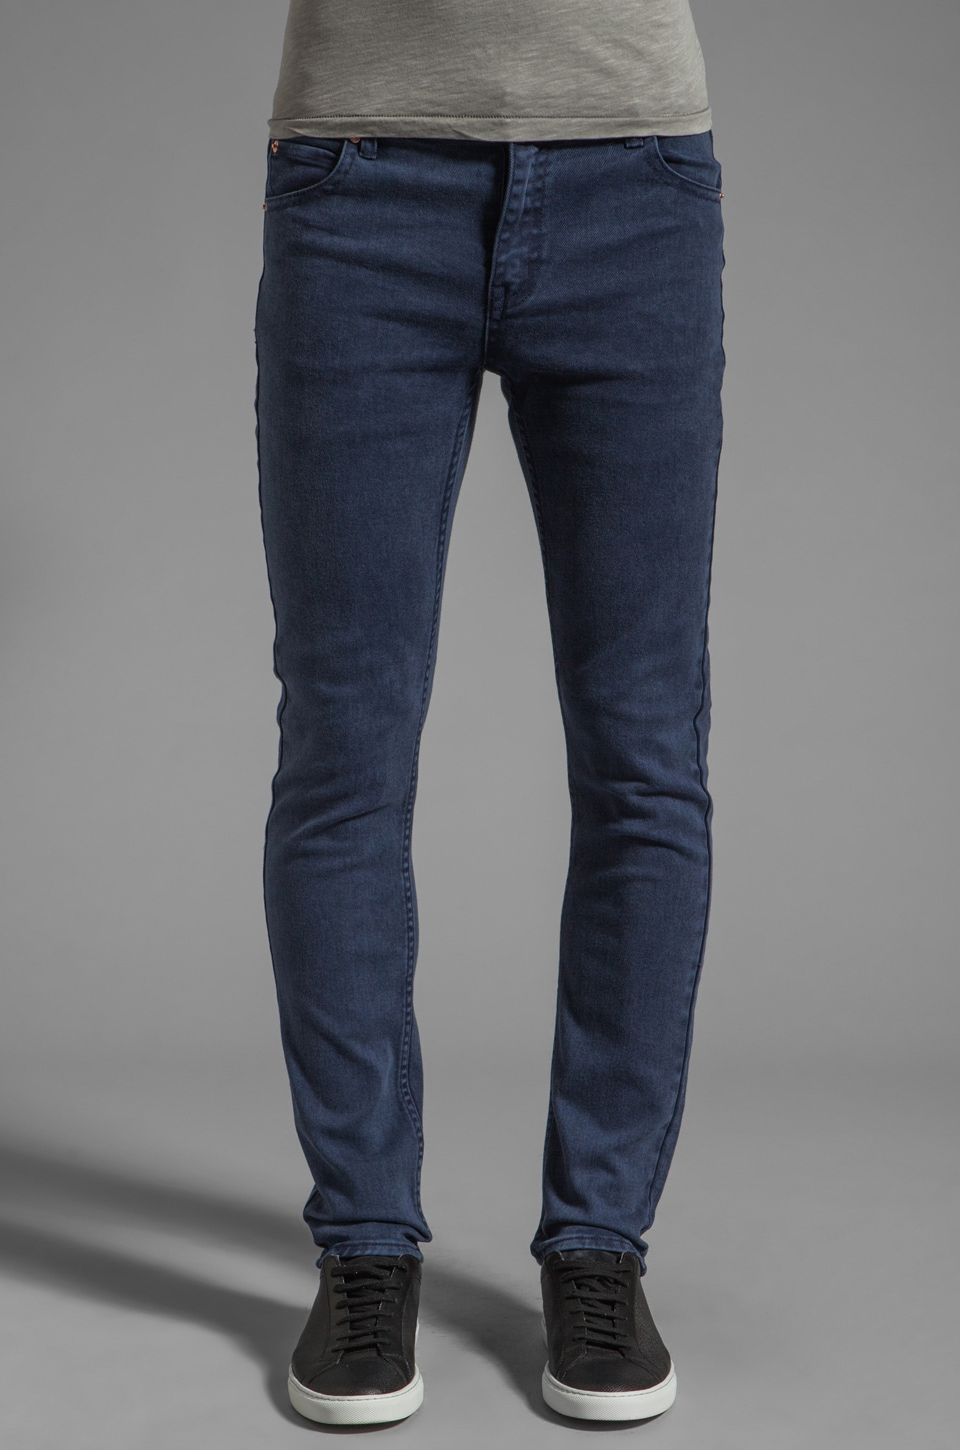 Cheap Monday Tight in Navy Nice